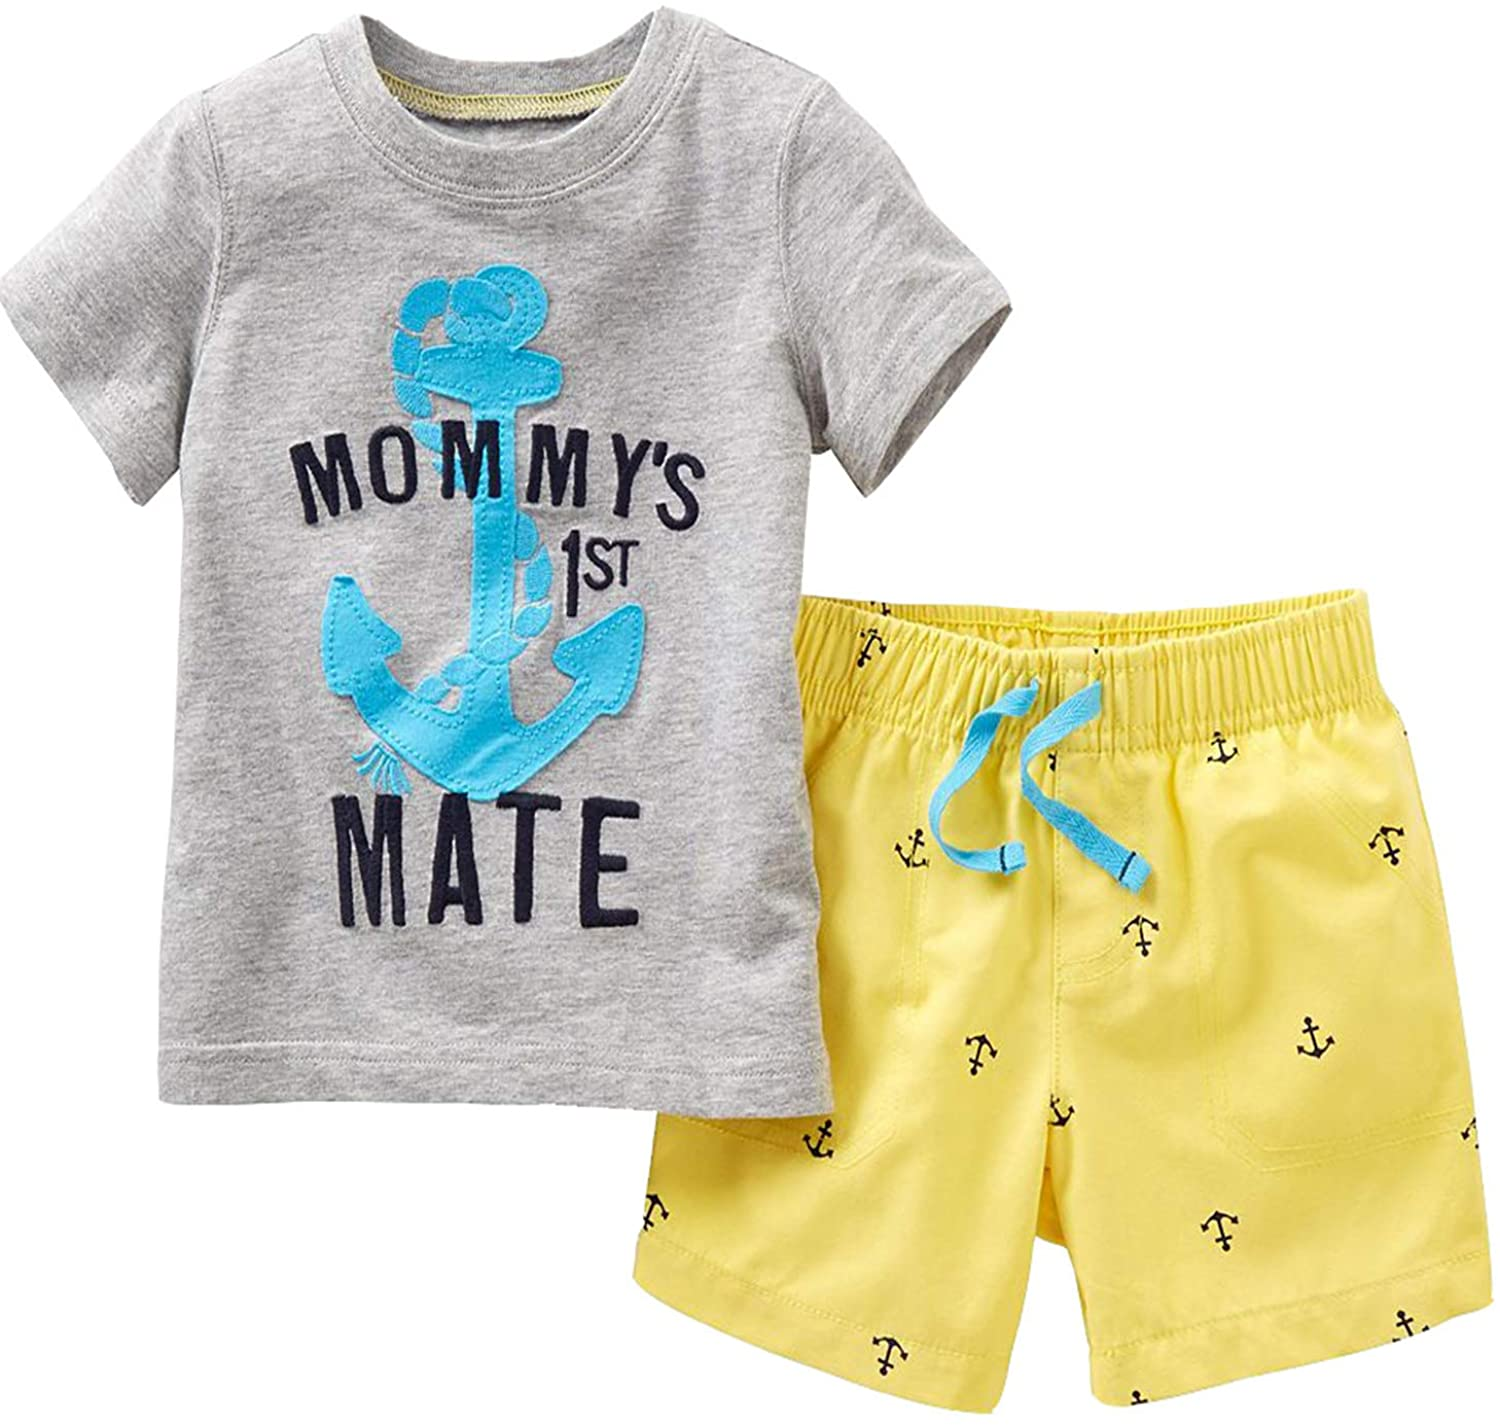 Toddler Max 65% OFF Boys Cotton Clothing Sets Tee Short Sleeve and Ranking TOP13 Shorts